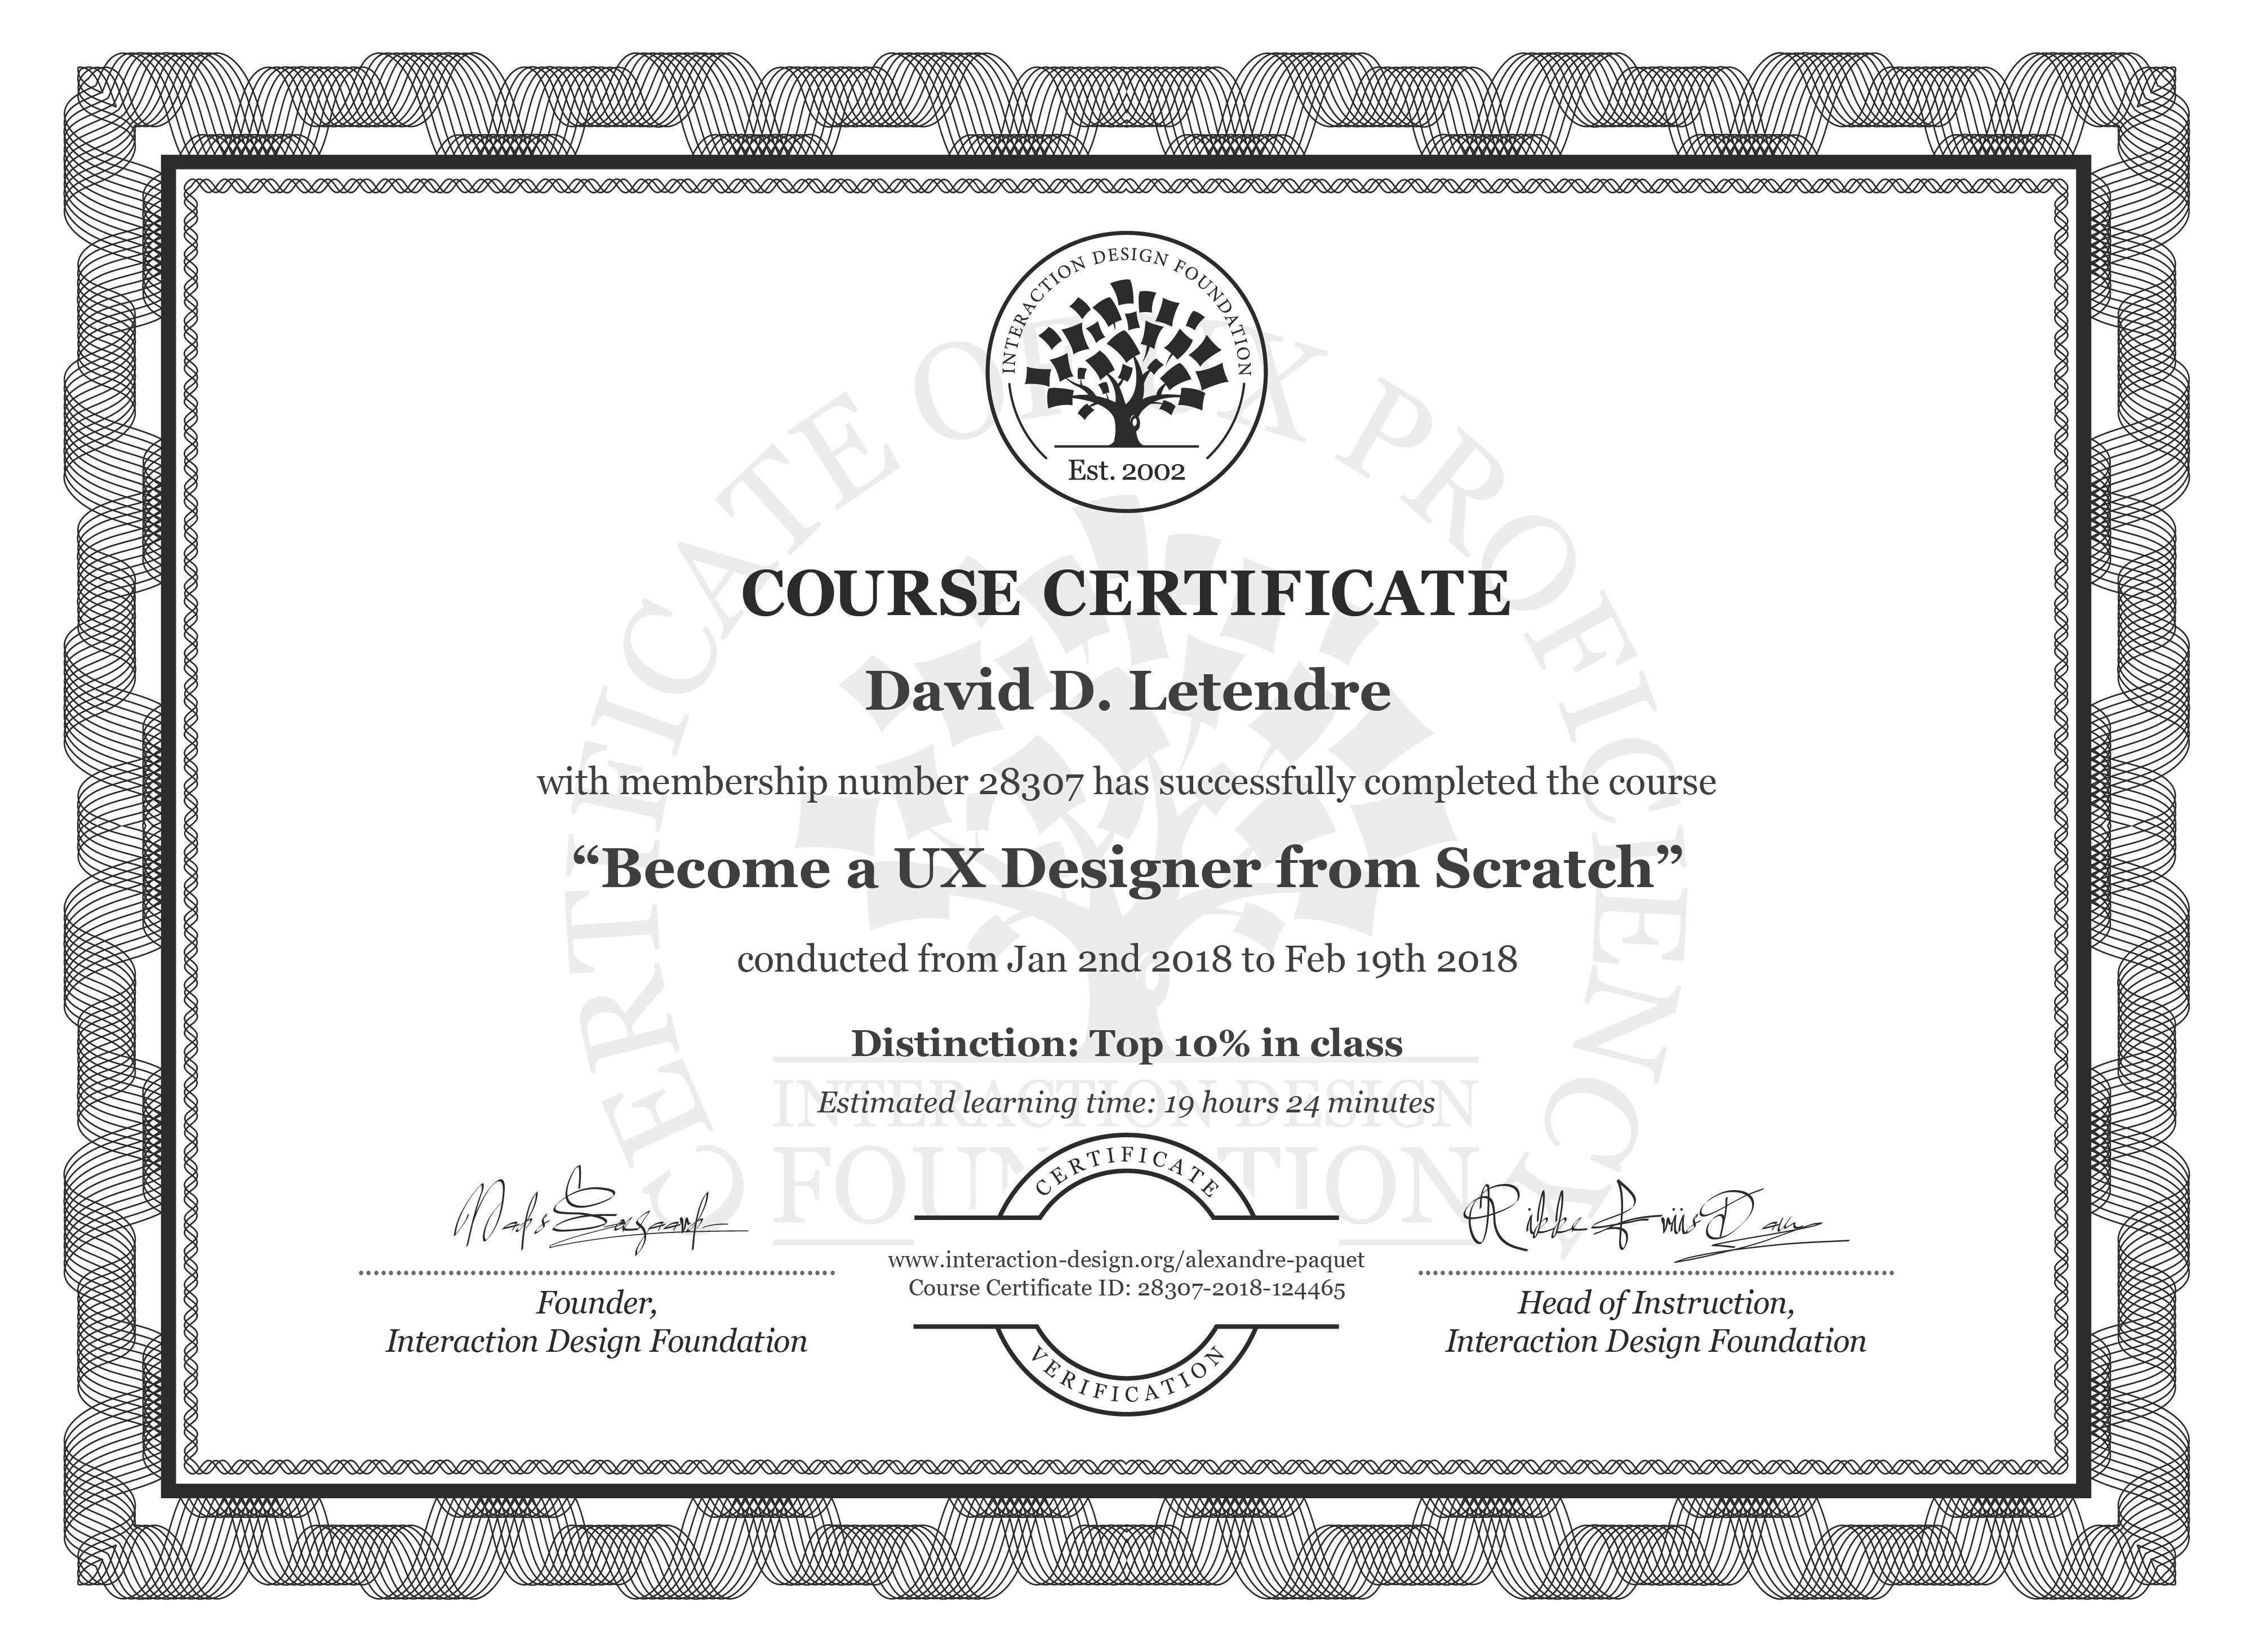 David D. Letendre: Course Certificate - User Experience: The Beginner's Guide